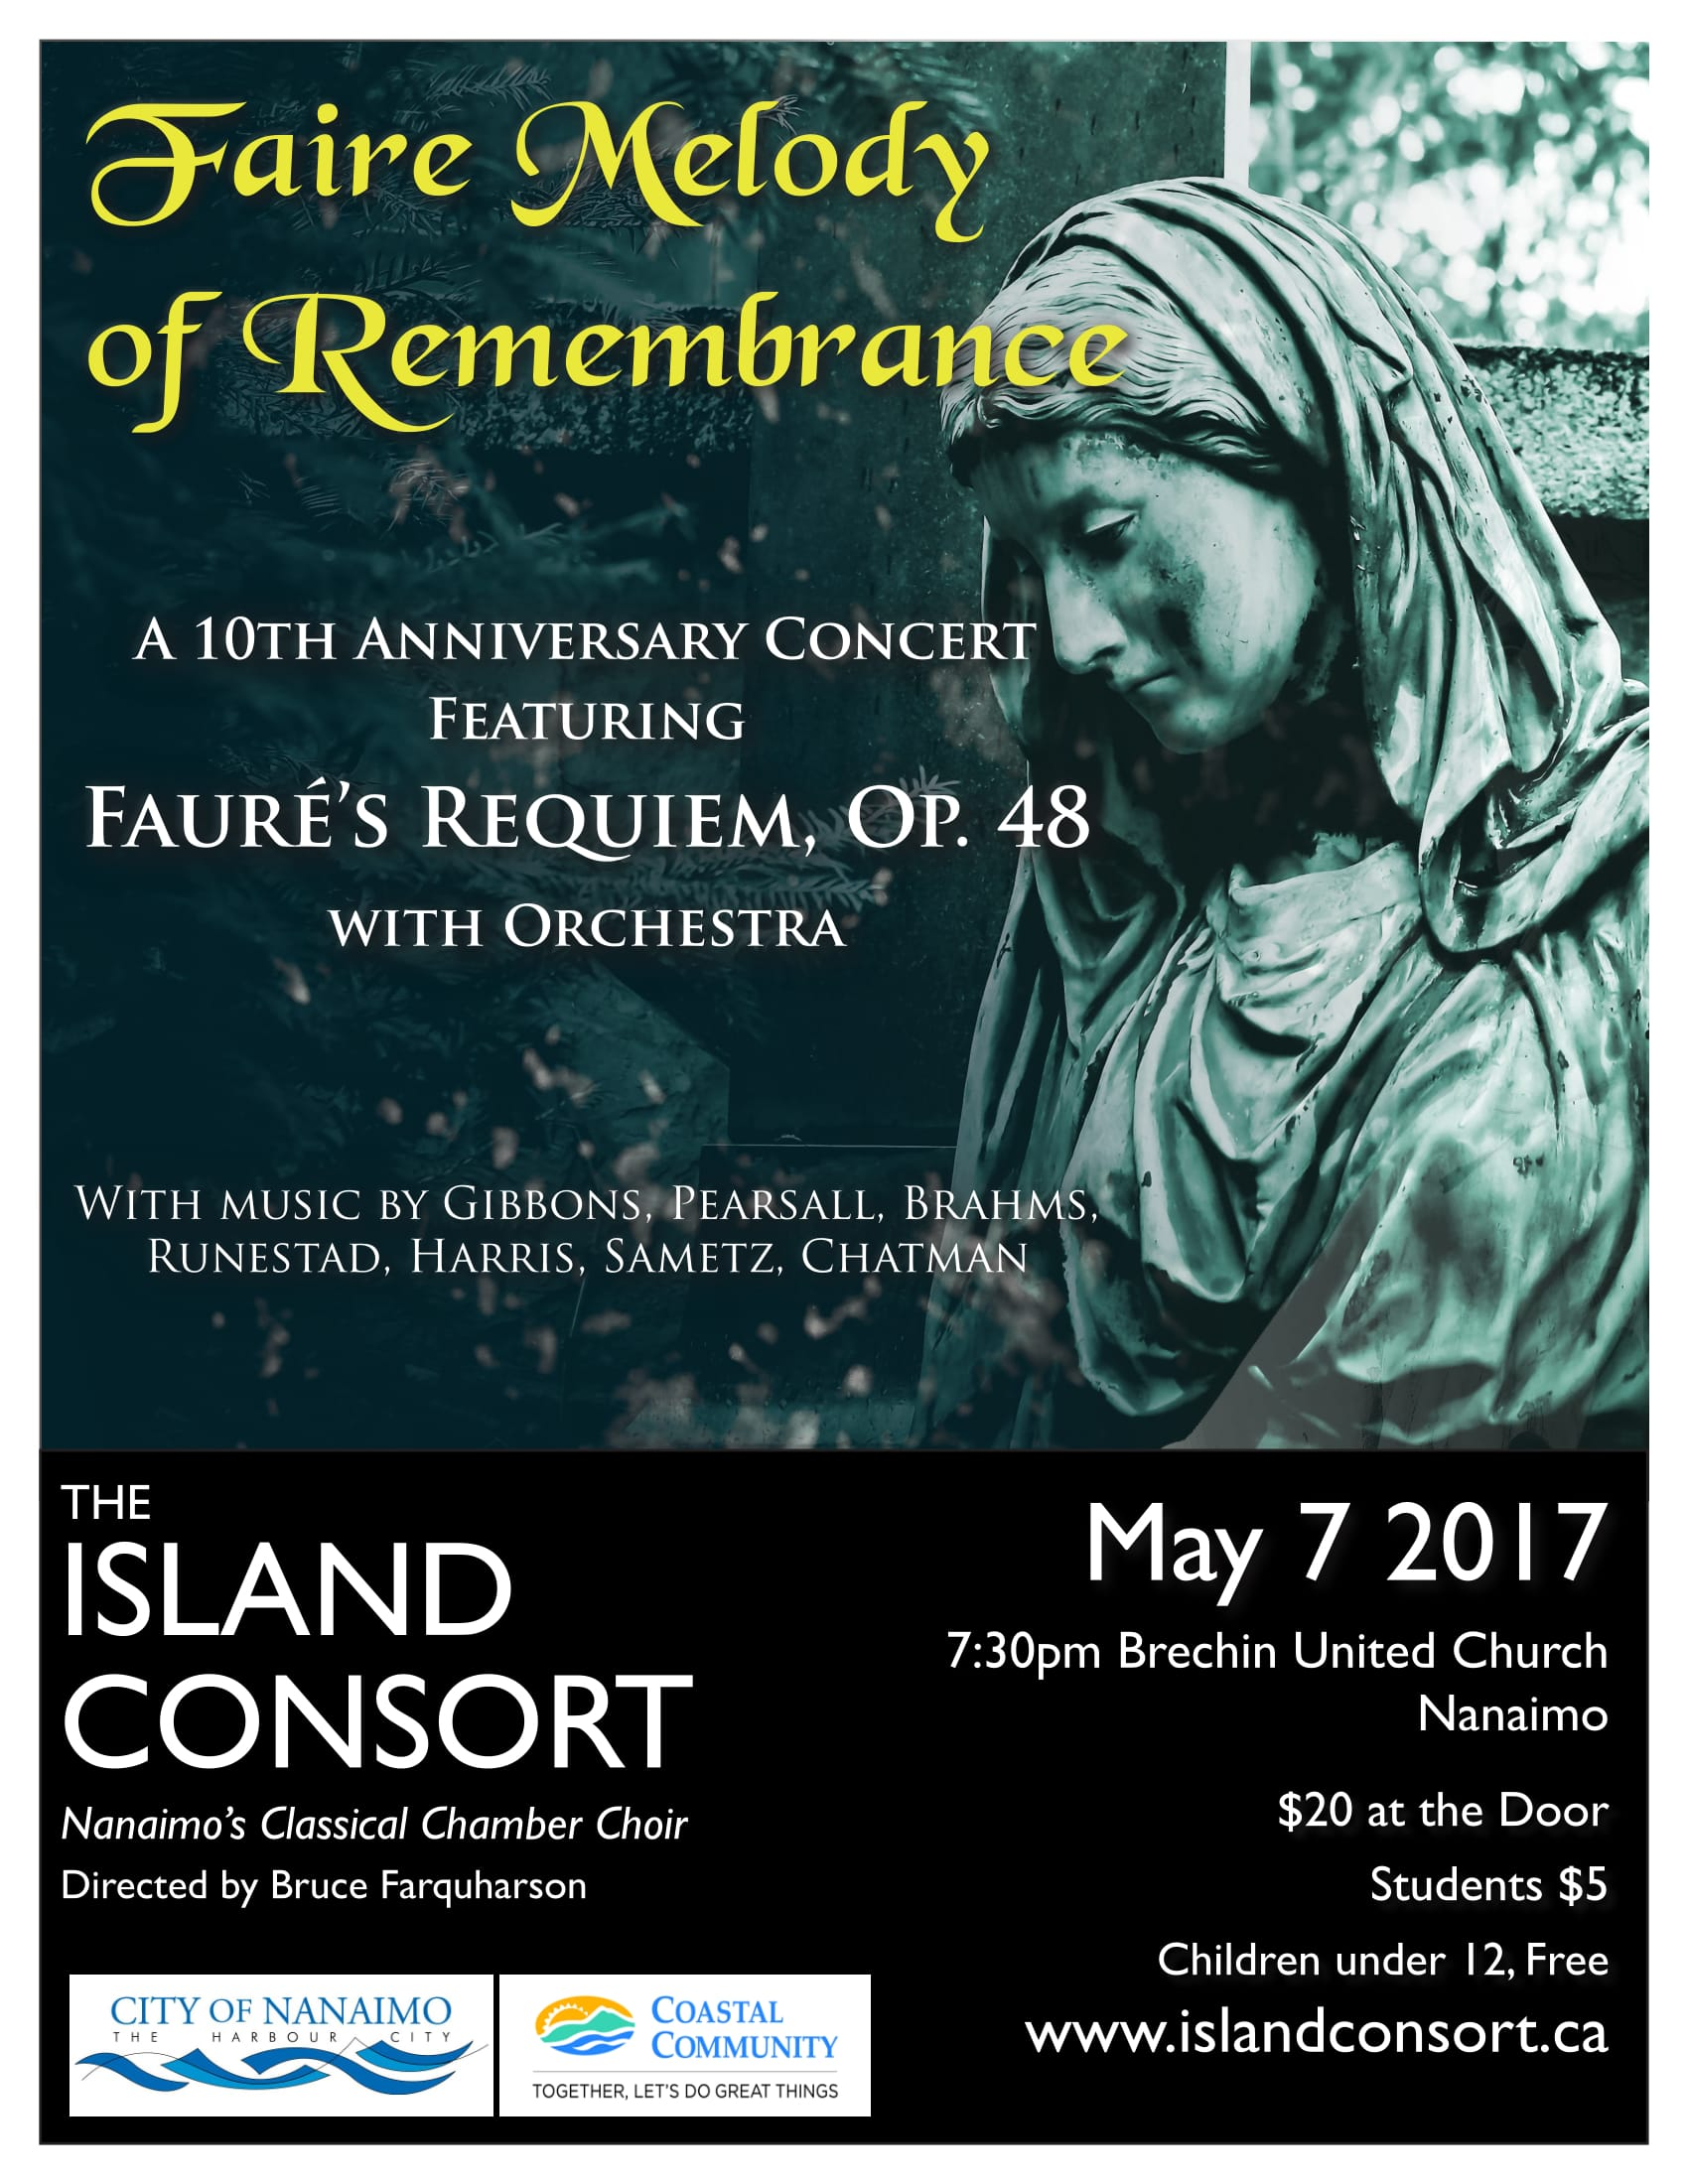 Faire Melody of Remembrance